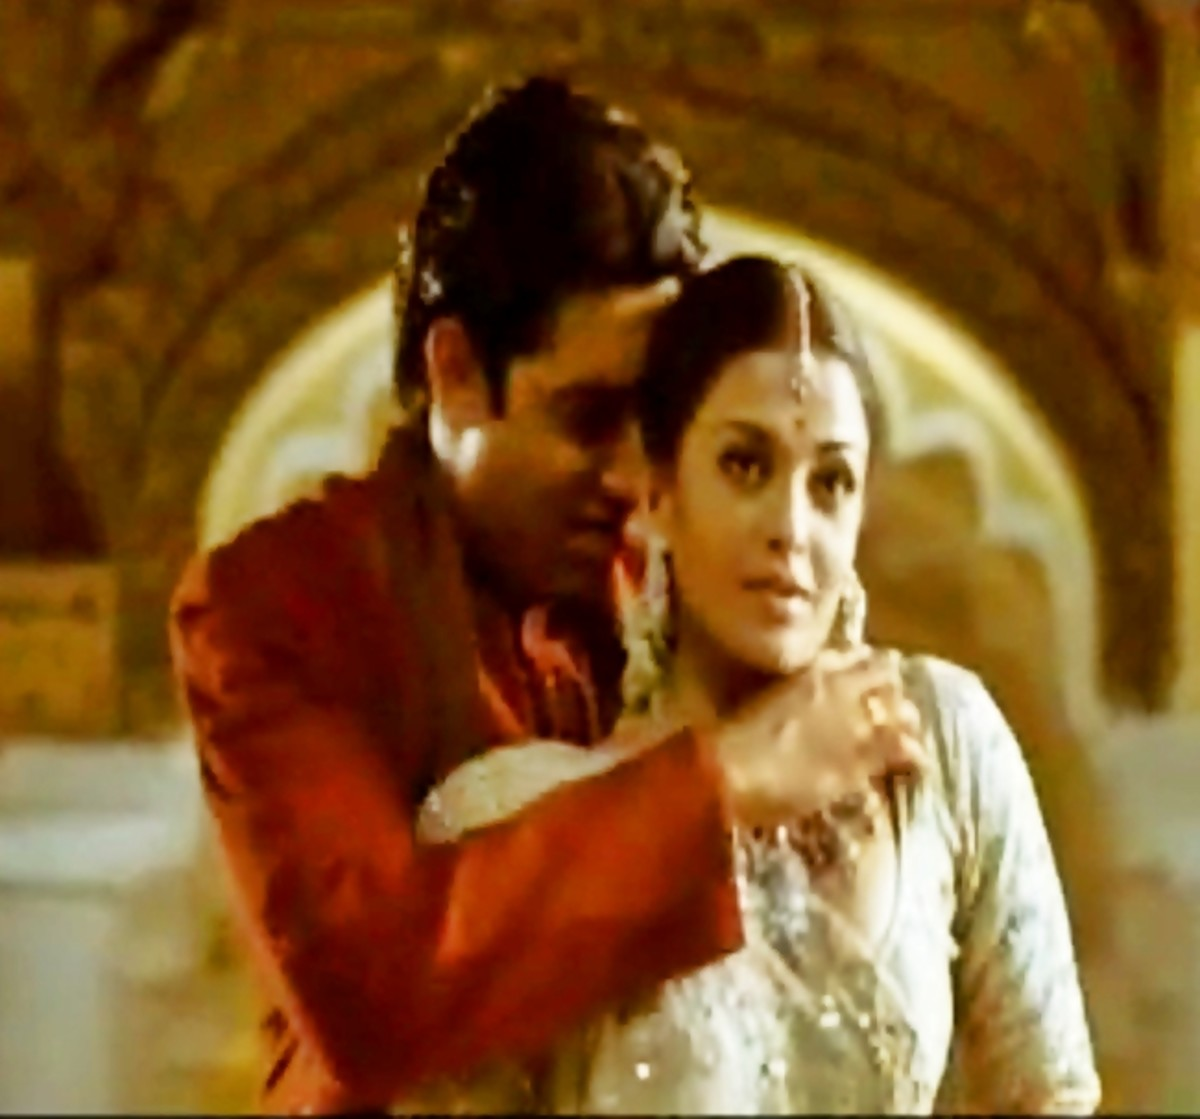 A great melodious creation by A R Rahman.